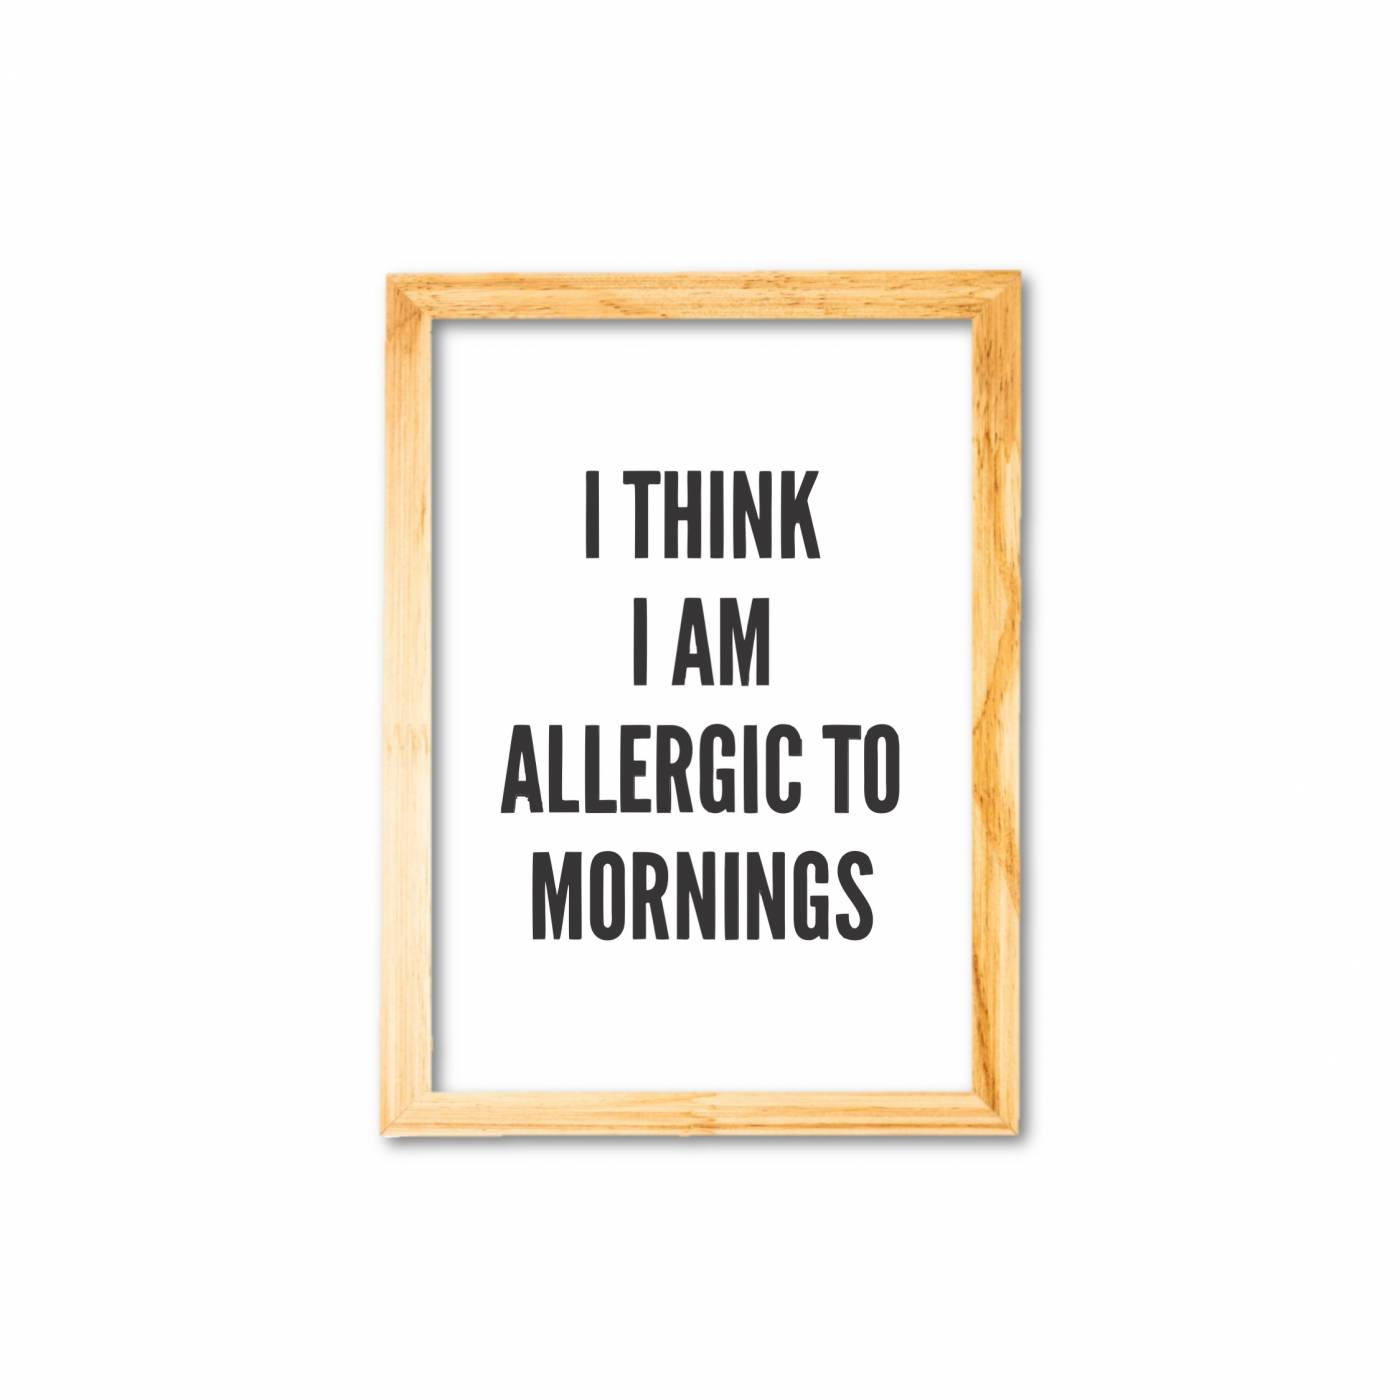 Allergic to morning